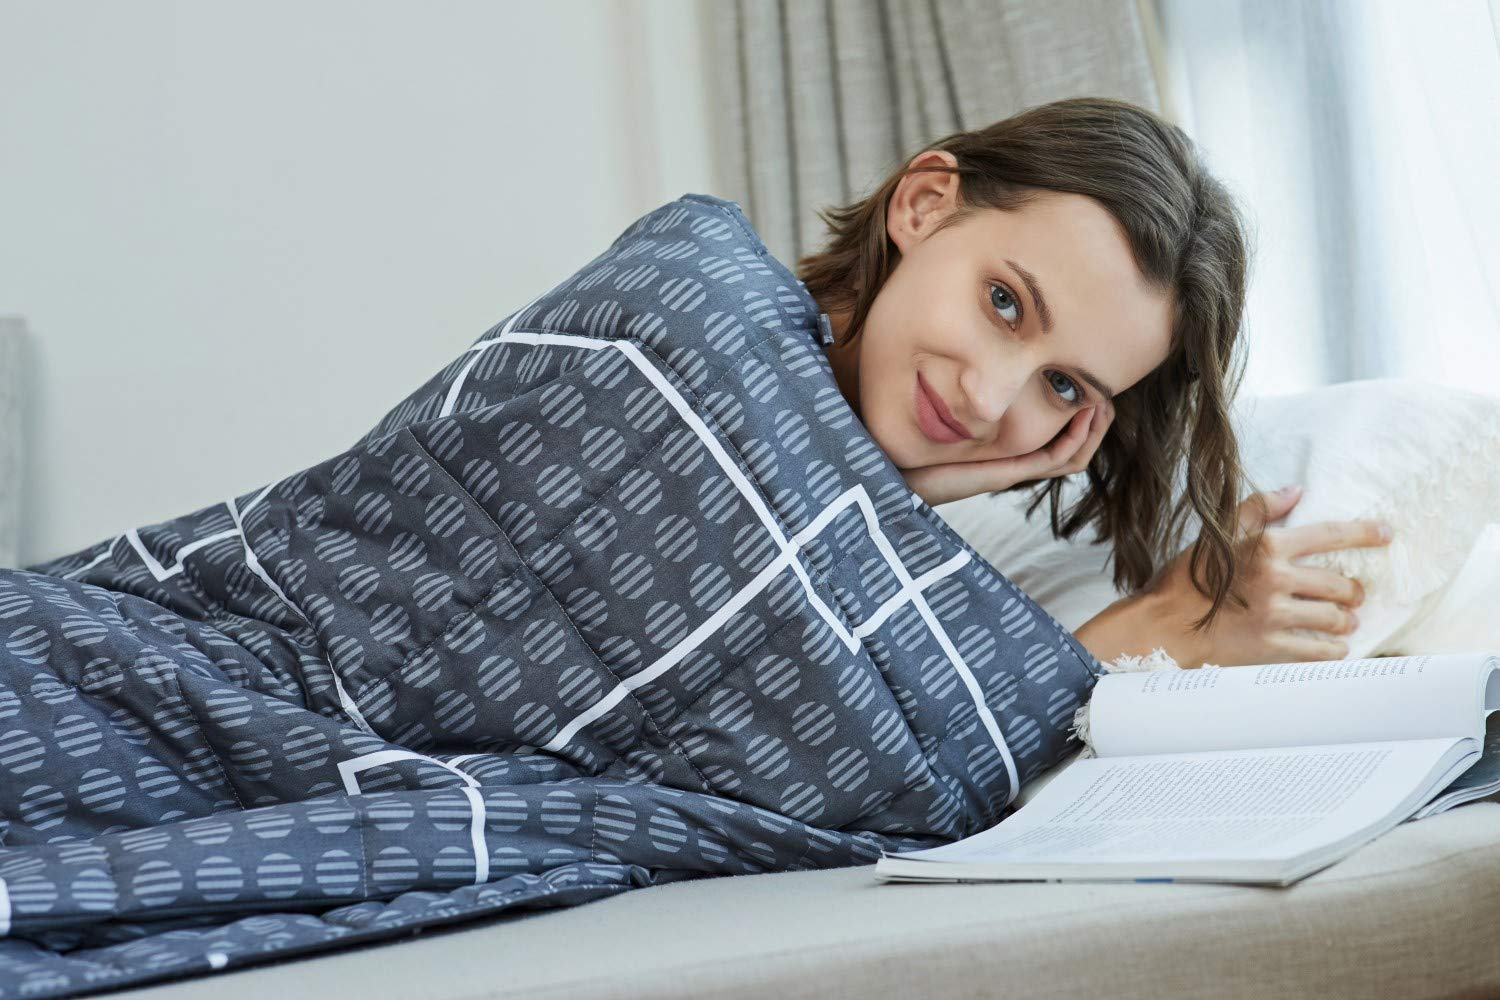 | 2.0 Heavy Blanket YnM Weighted Blanket 100/% Cotton Material with Glass Beads 7 lbs for Kids, 41x60